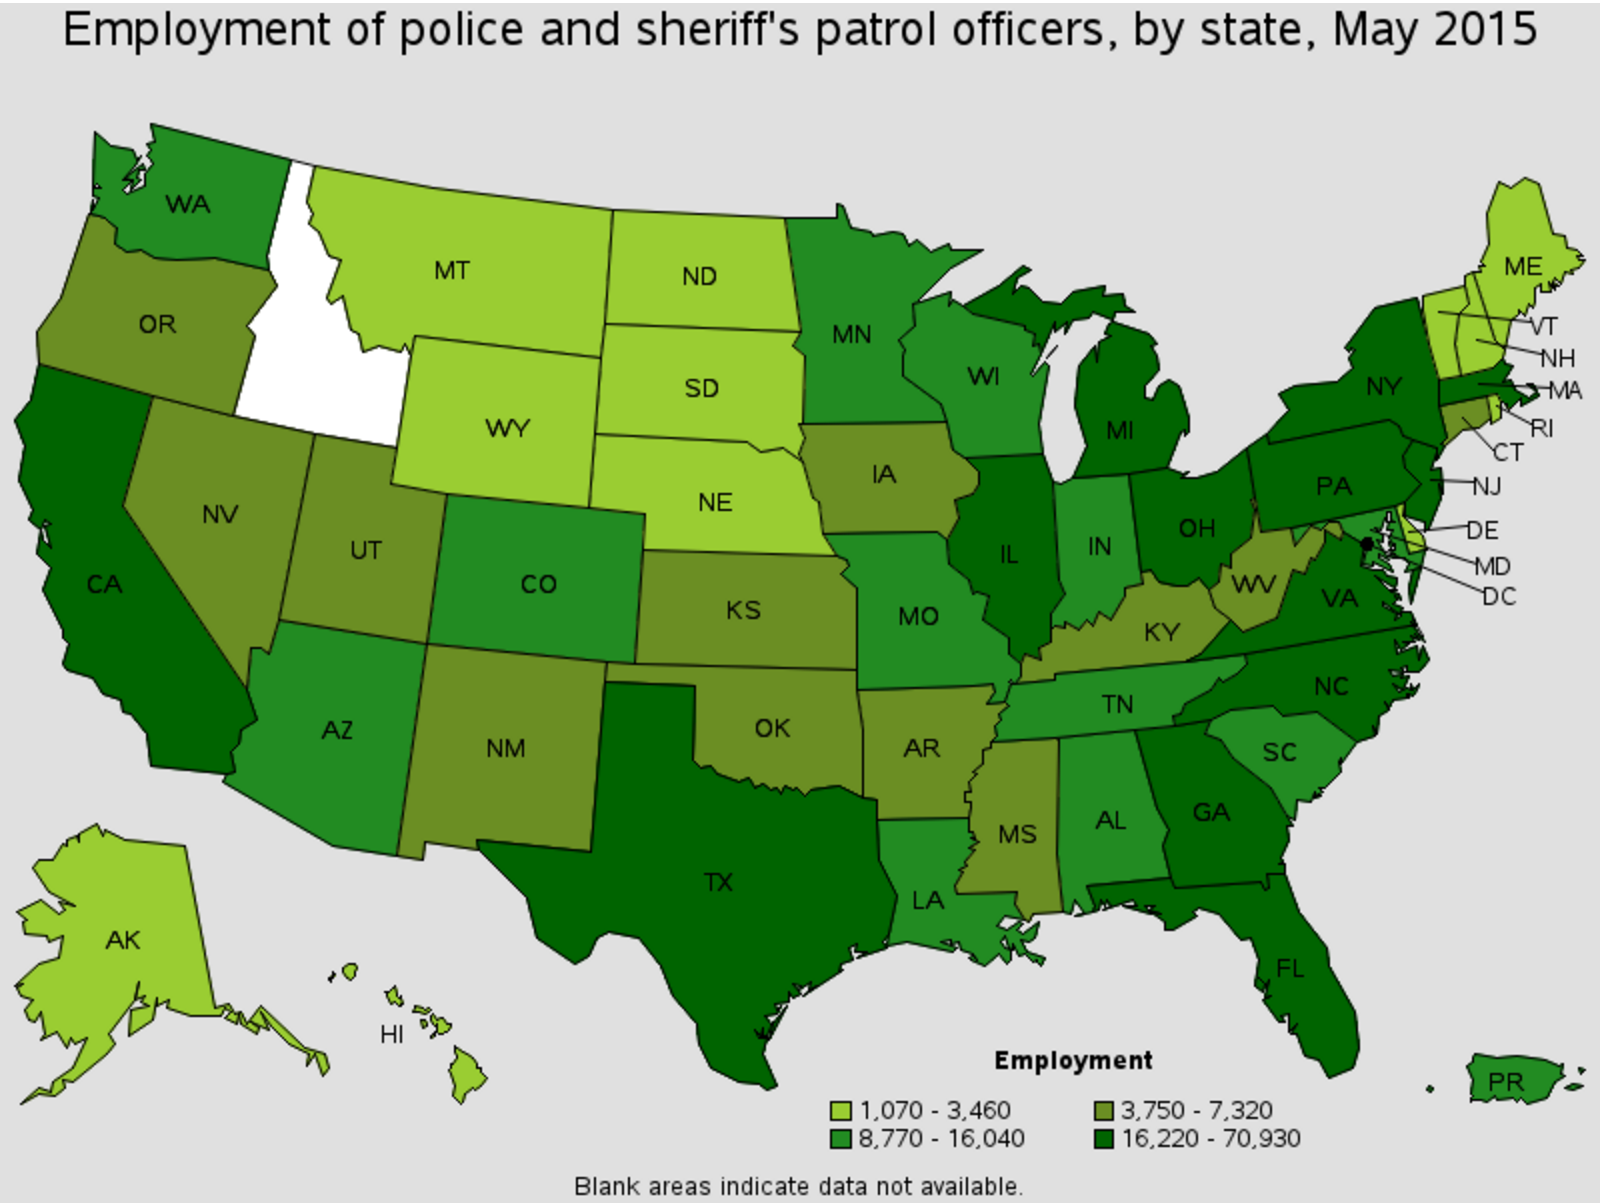 Wellsburg police officer career outlook by state